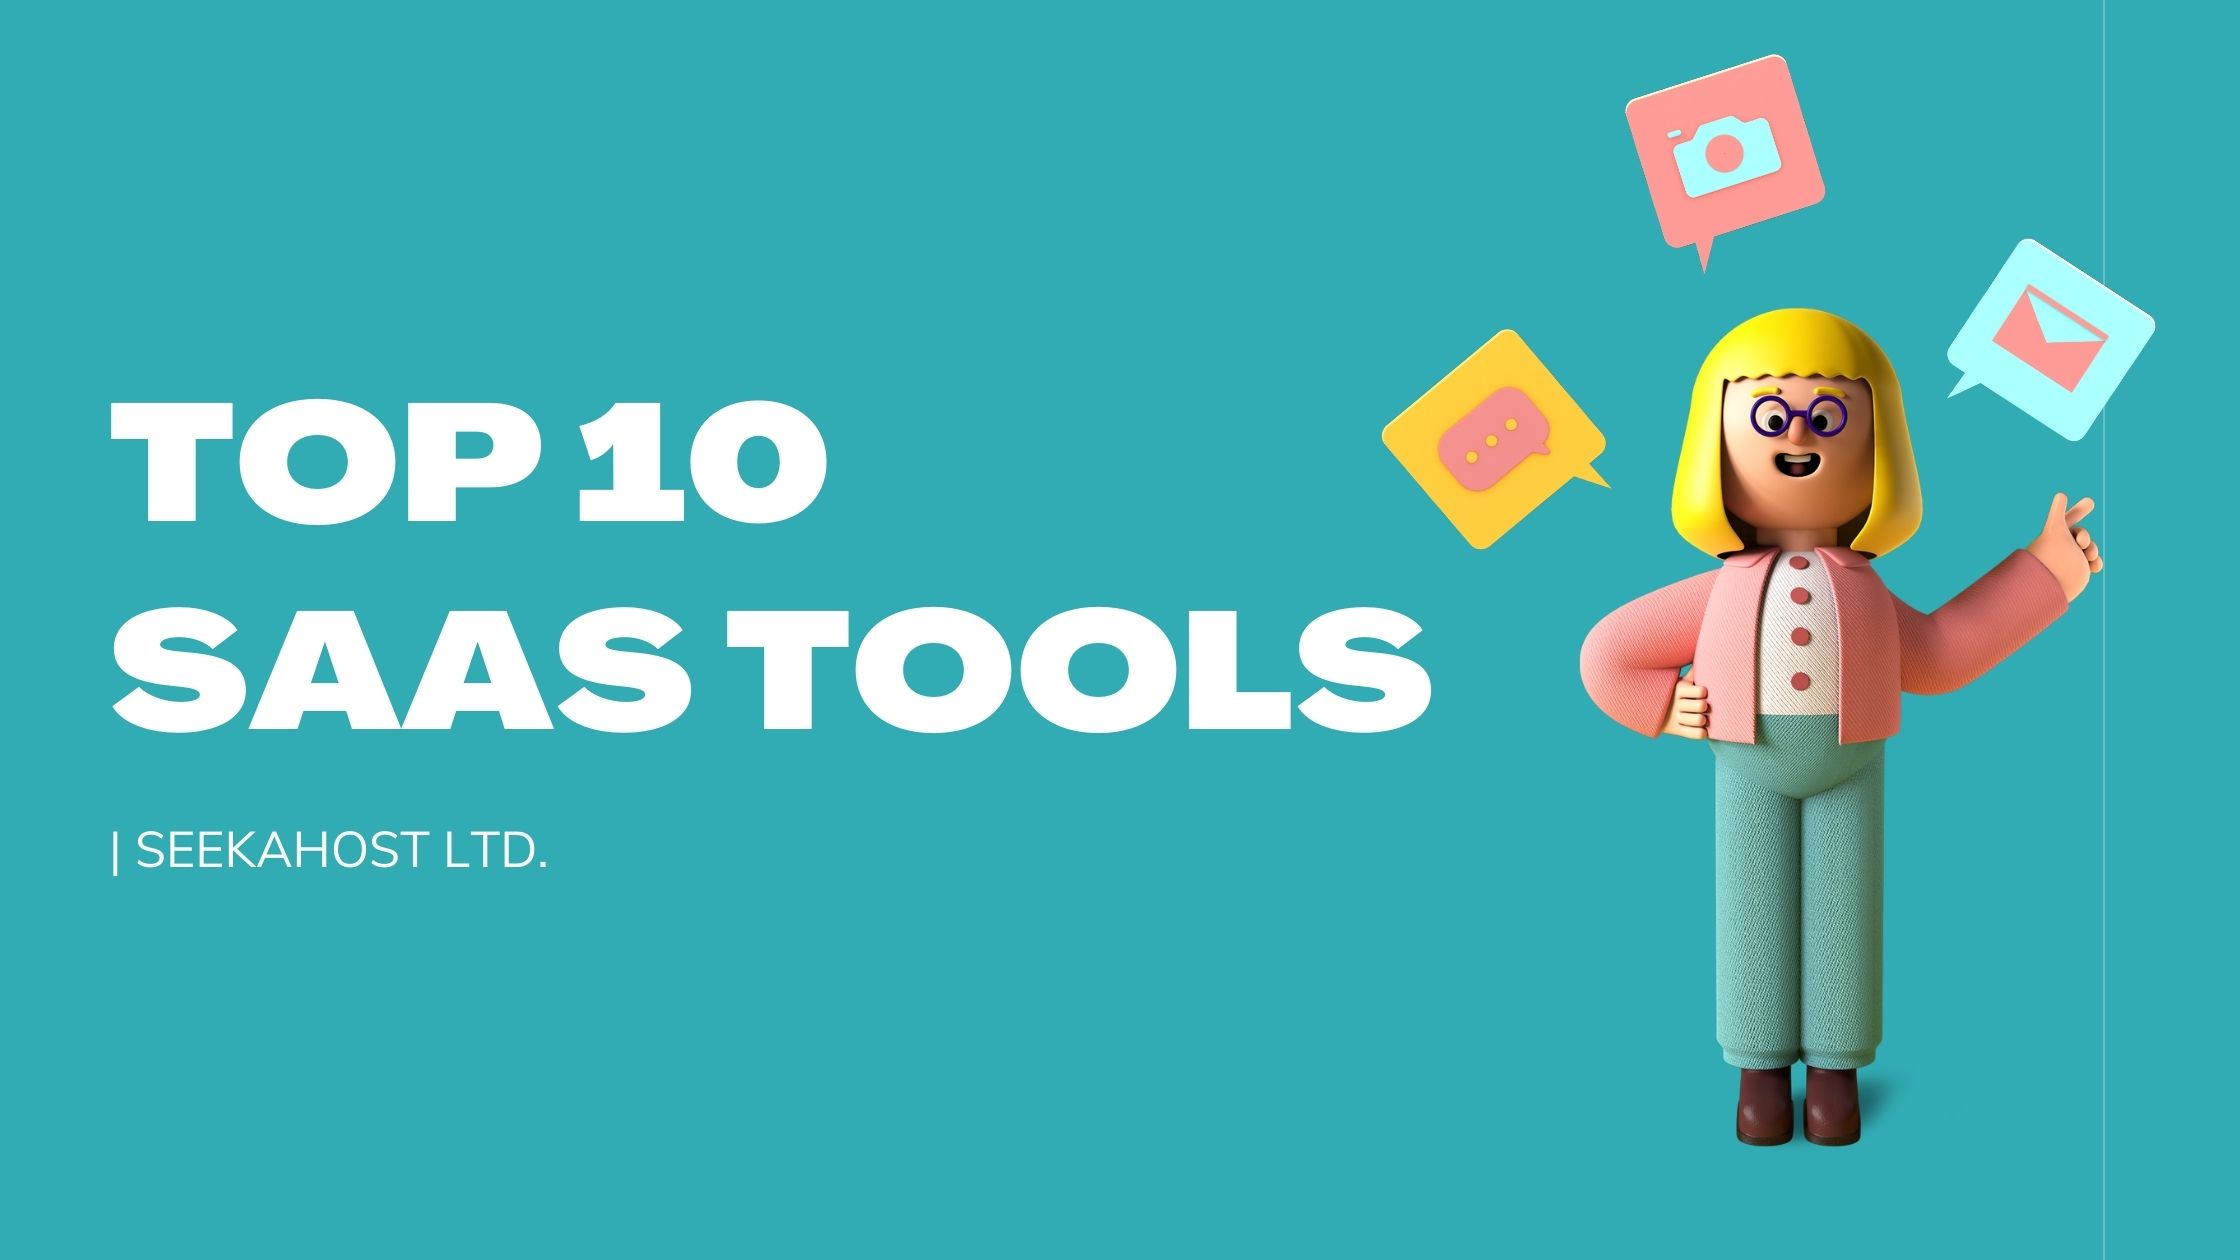 Top 10 Saas Tools For Business